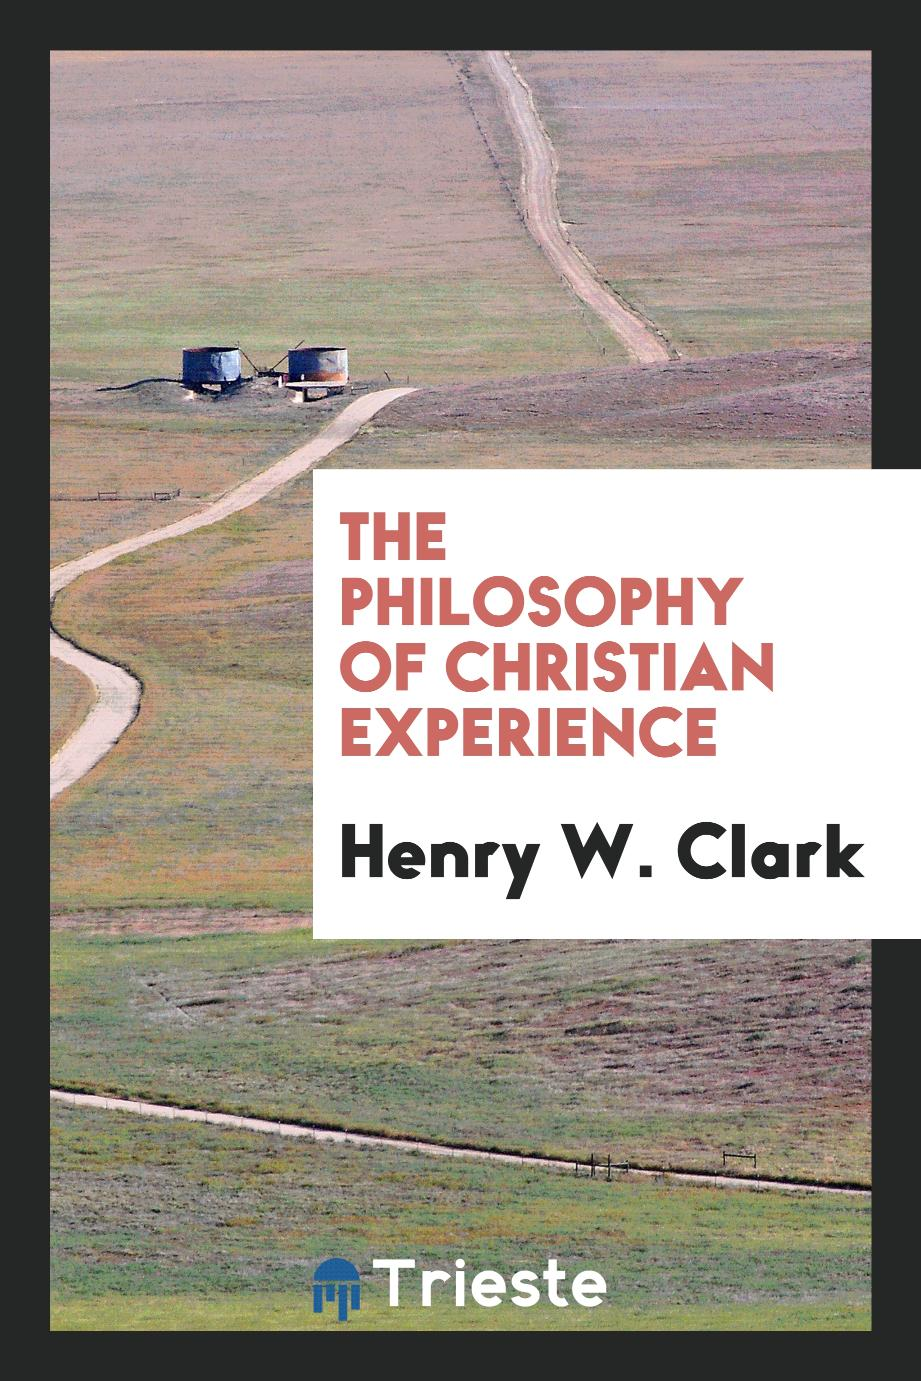 The philosophy of Christian experience